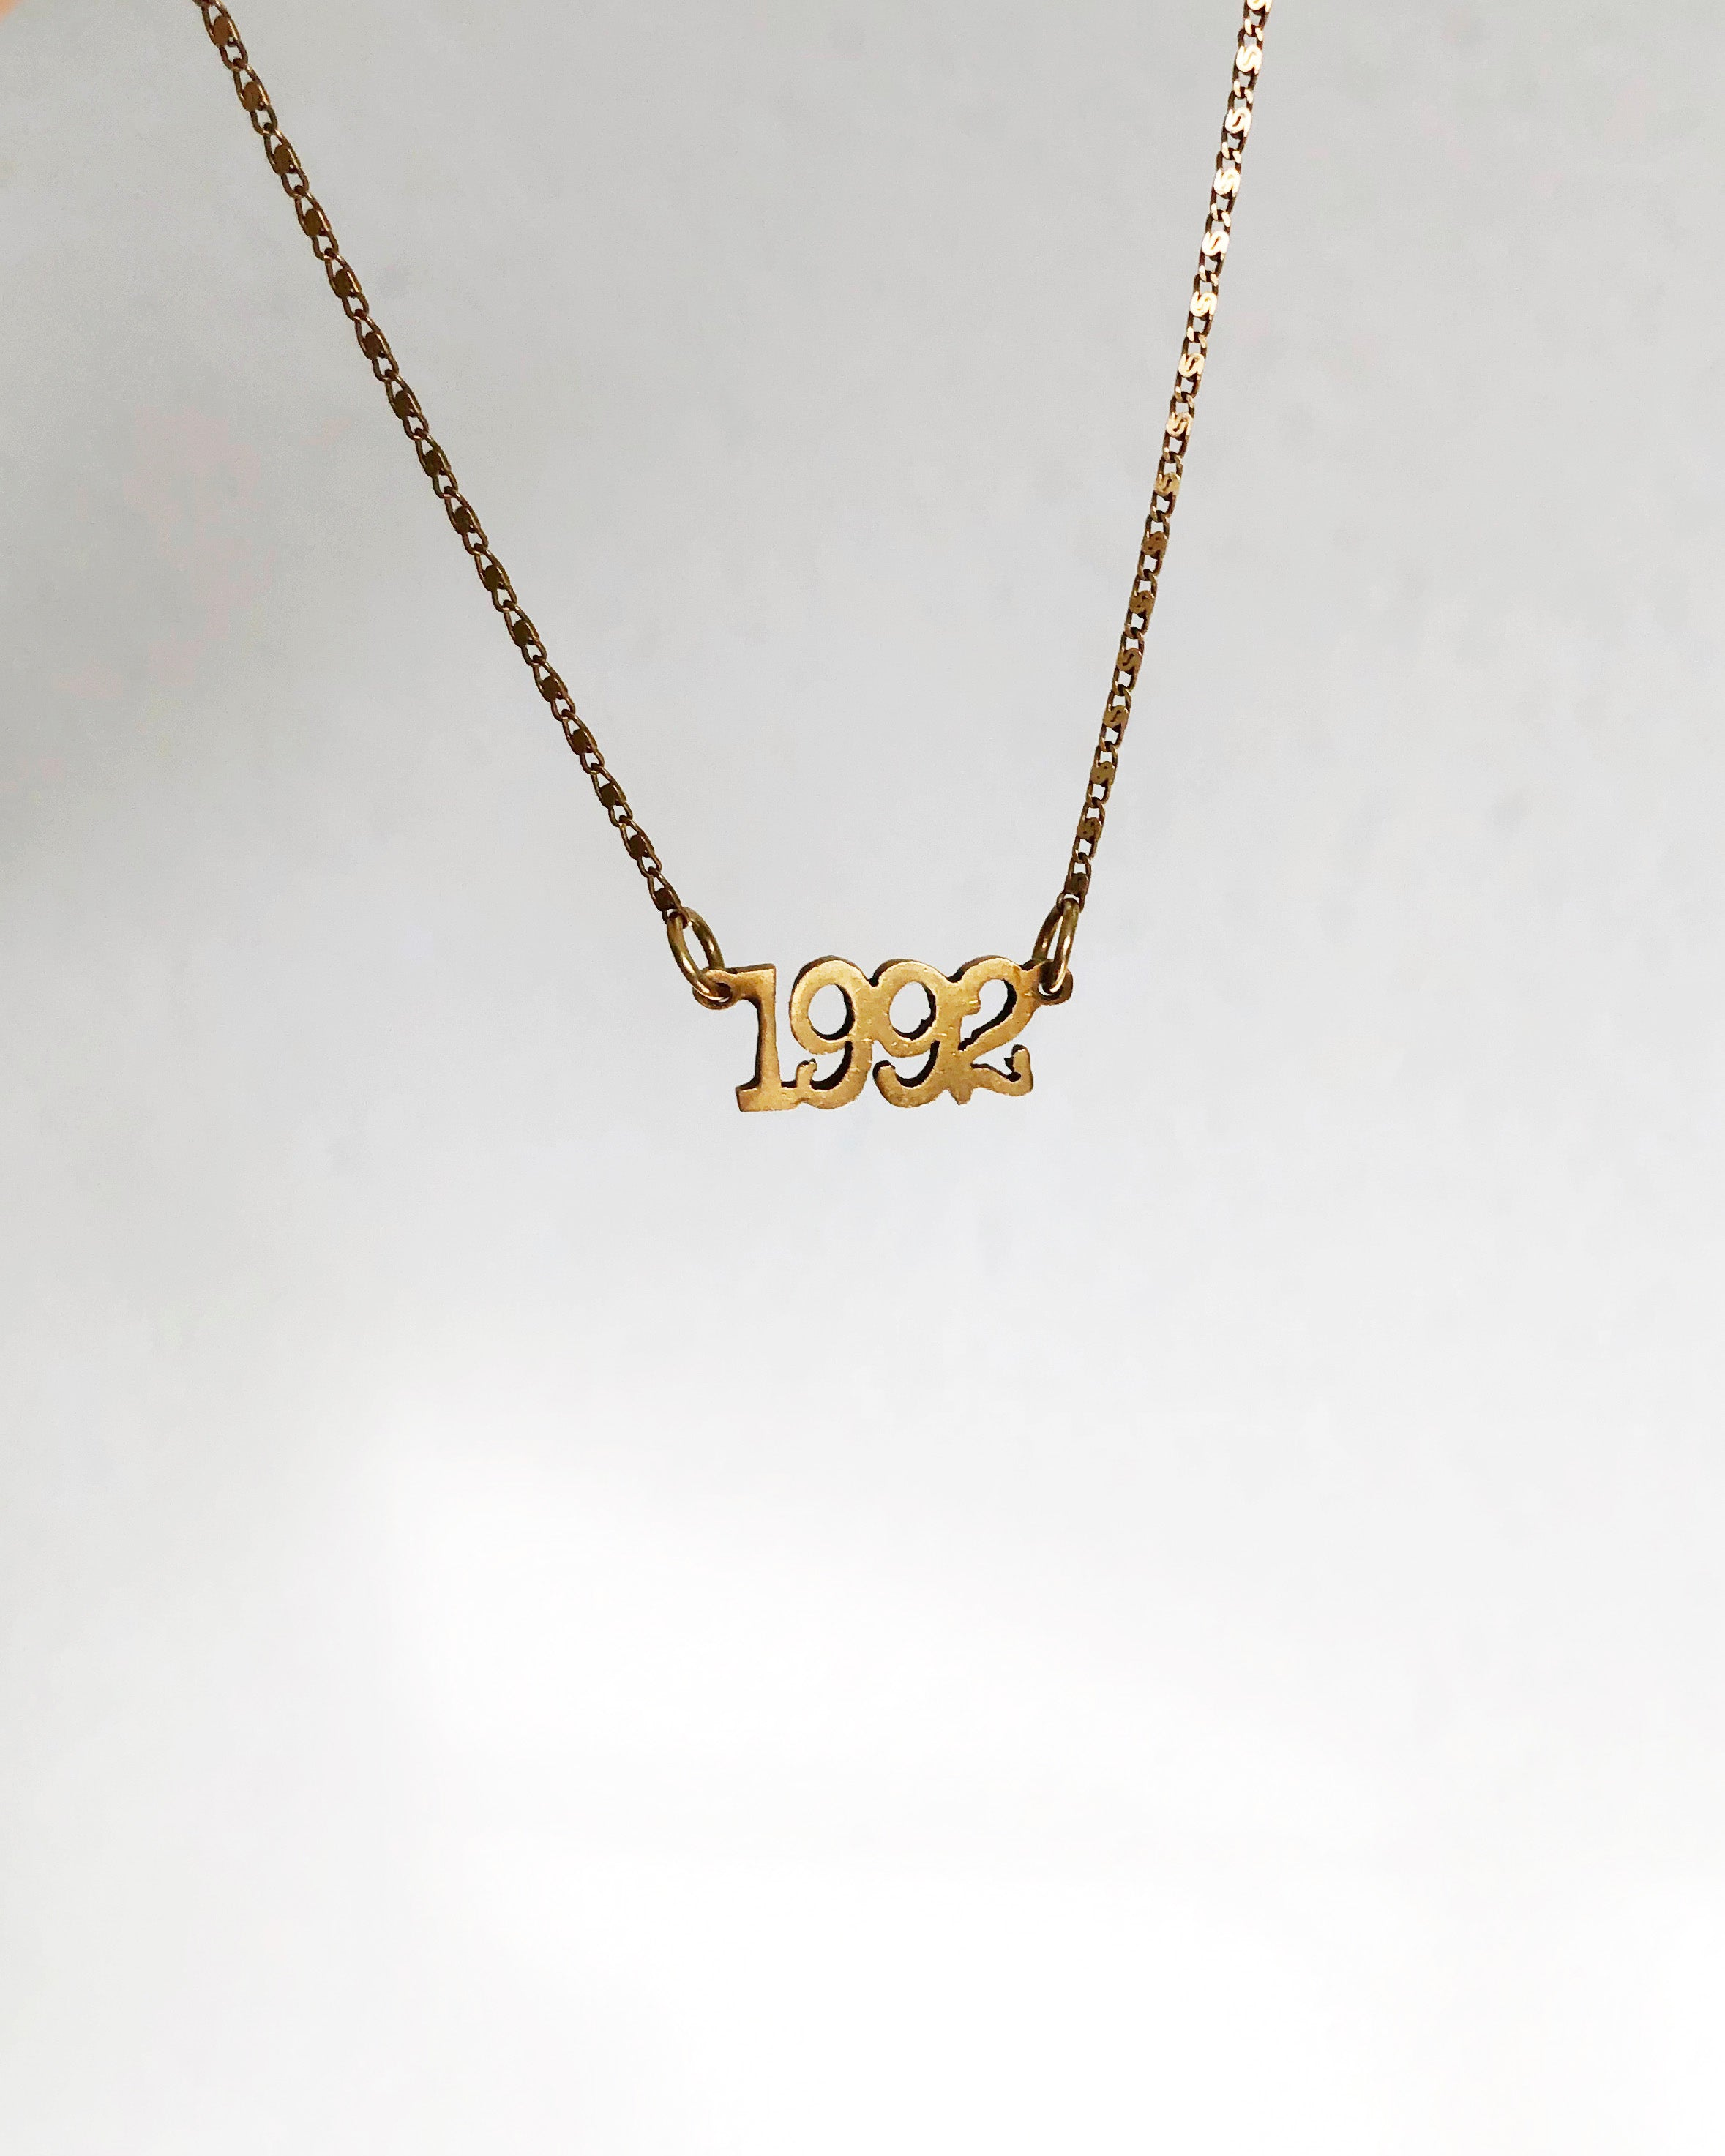 YEAR - horizontal necklace